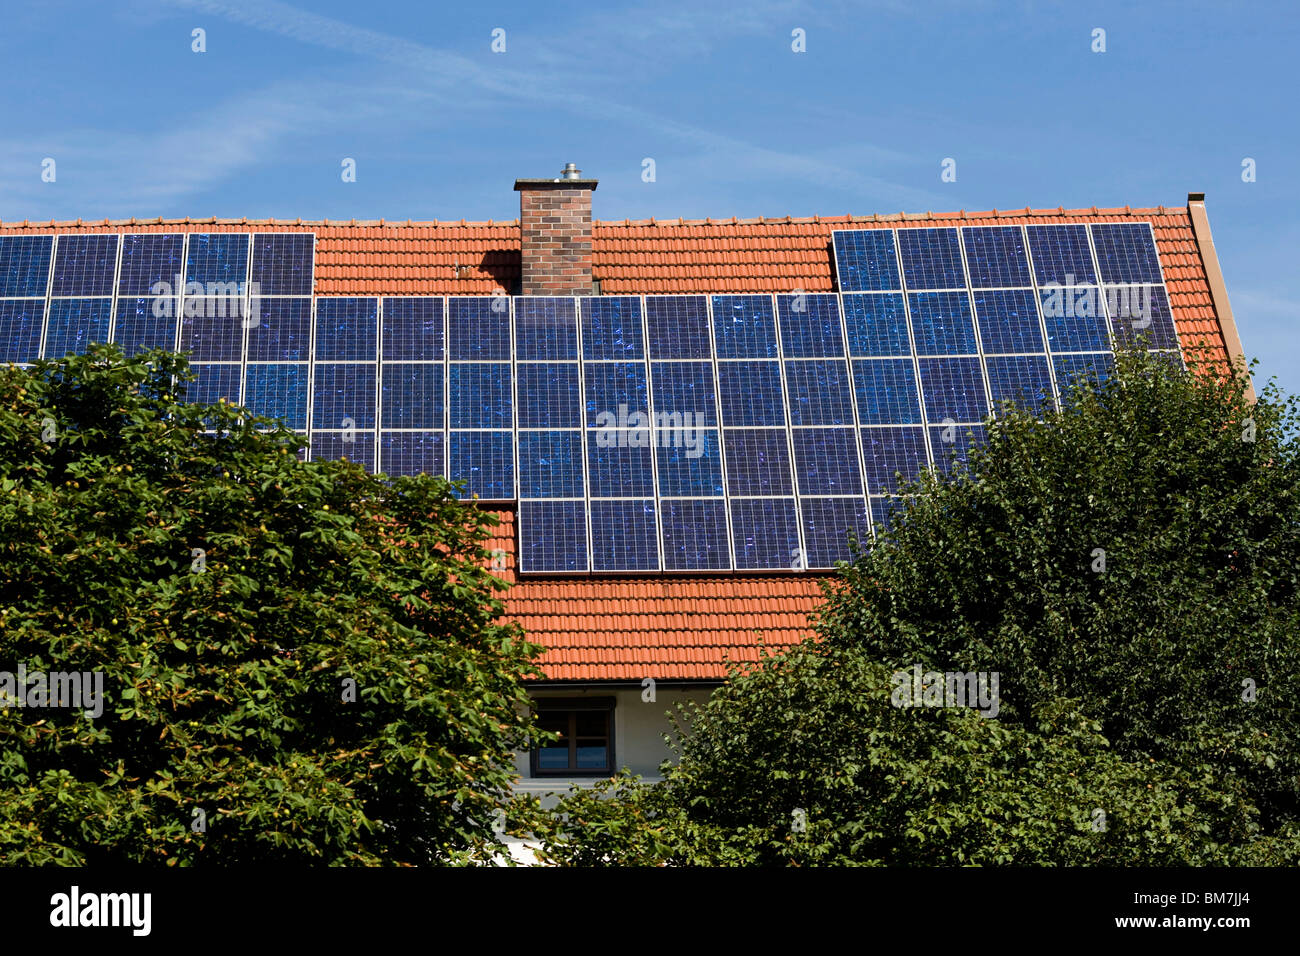 Germany: solar panels on a house - Stock Image